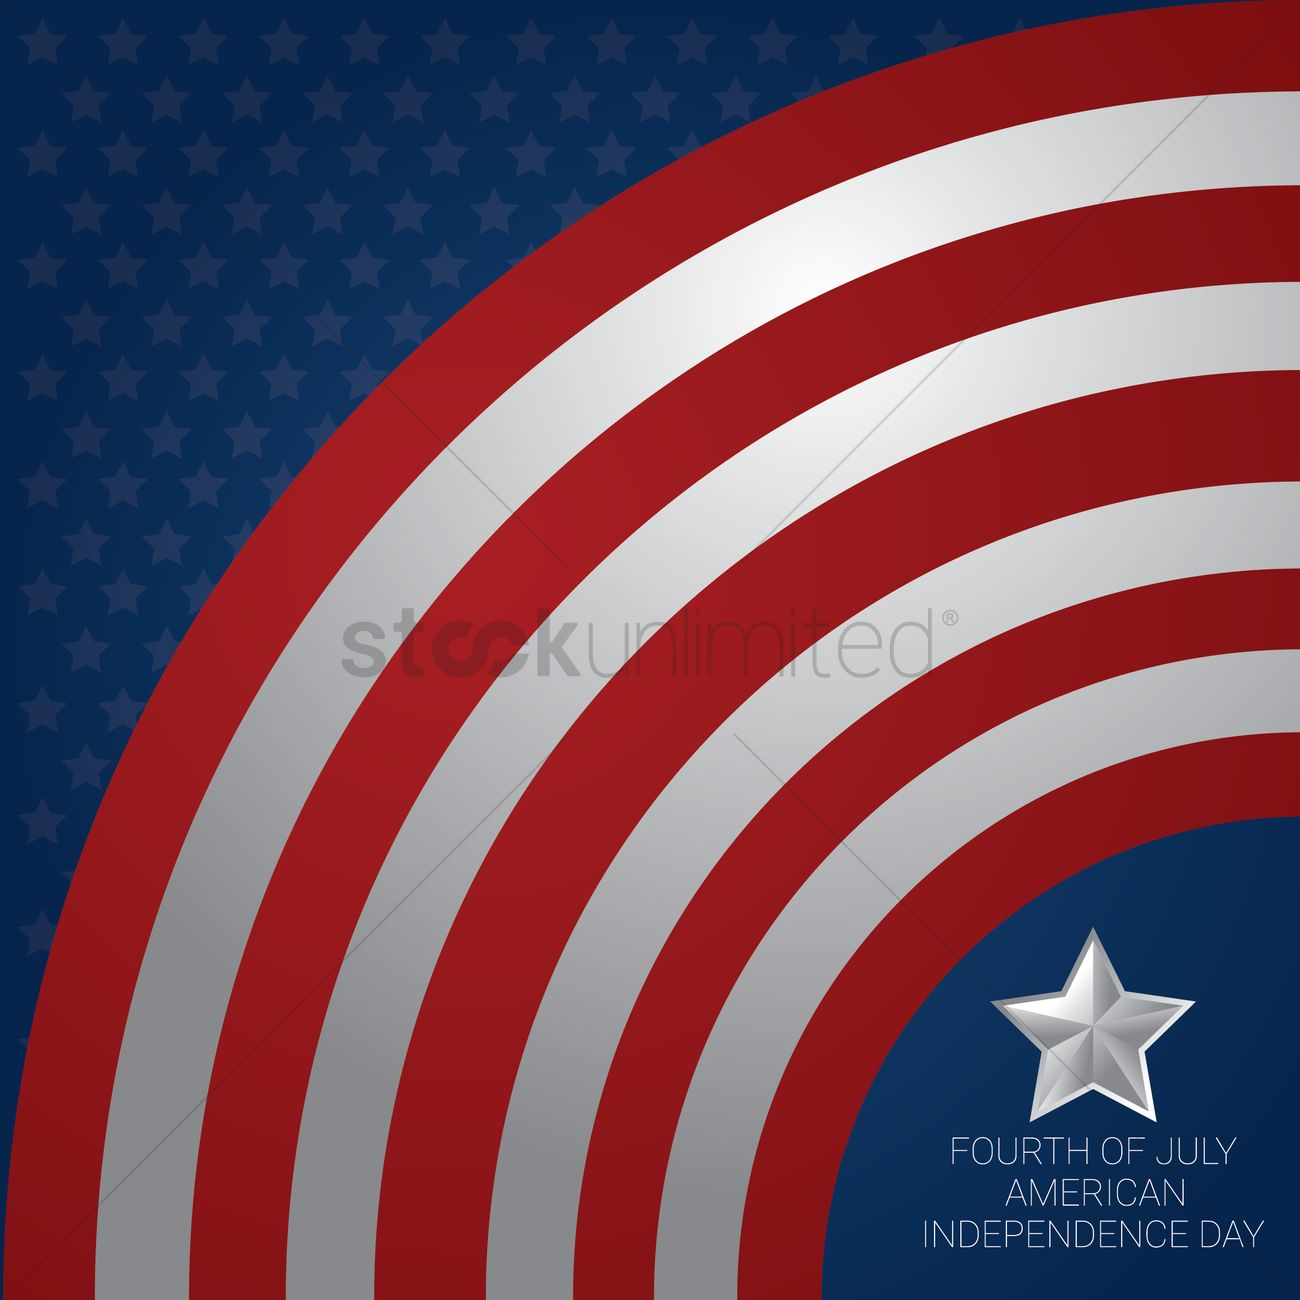 Usa independence day Vector Image - 1557291 | StockUnlimited